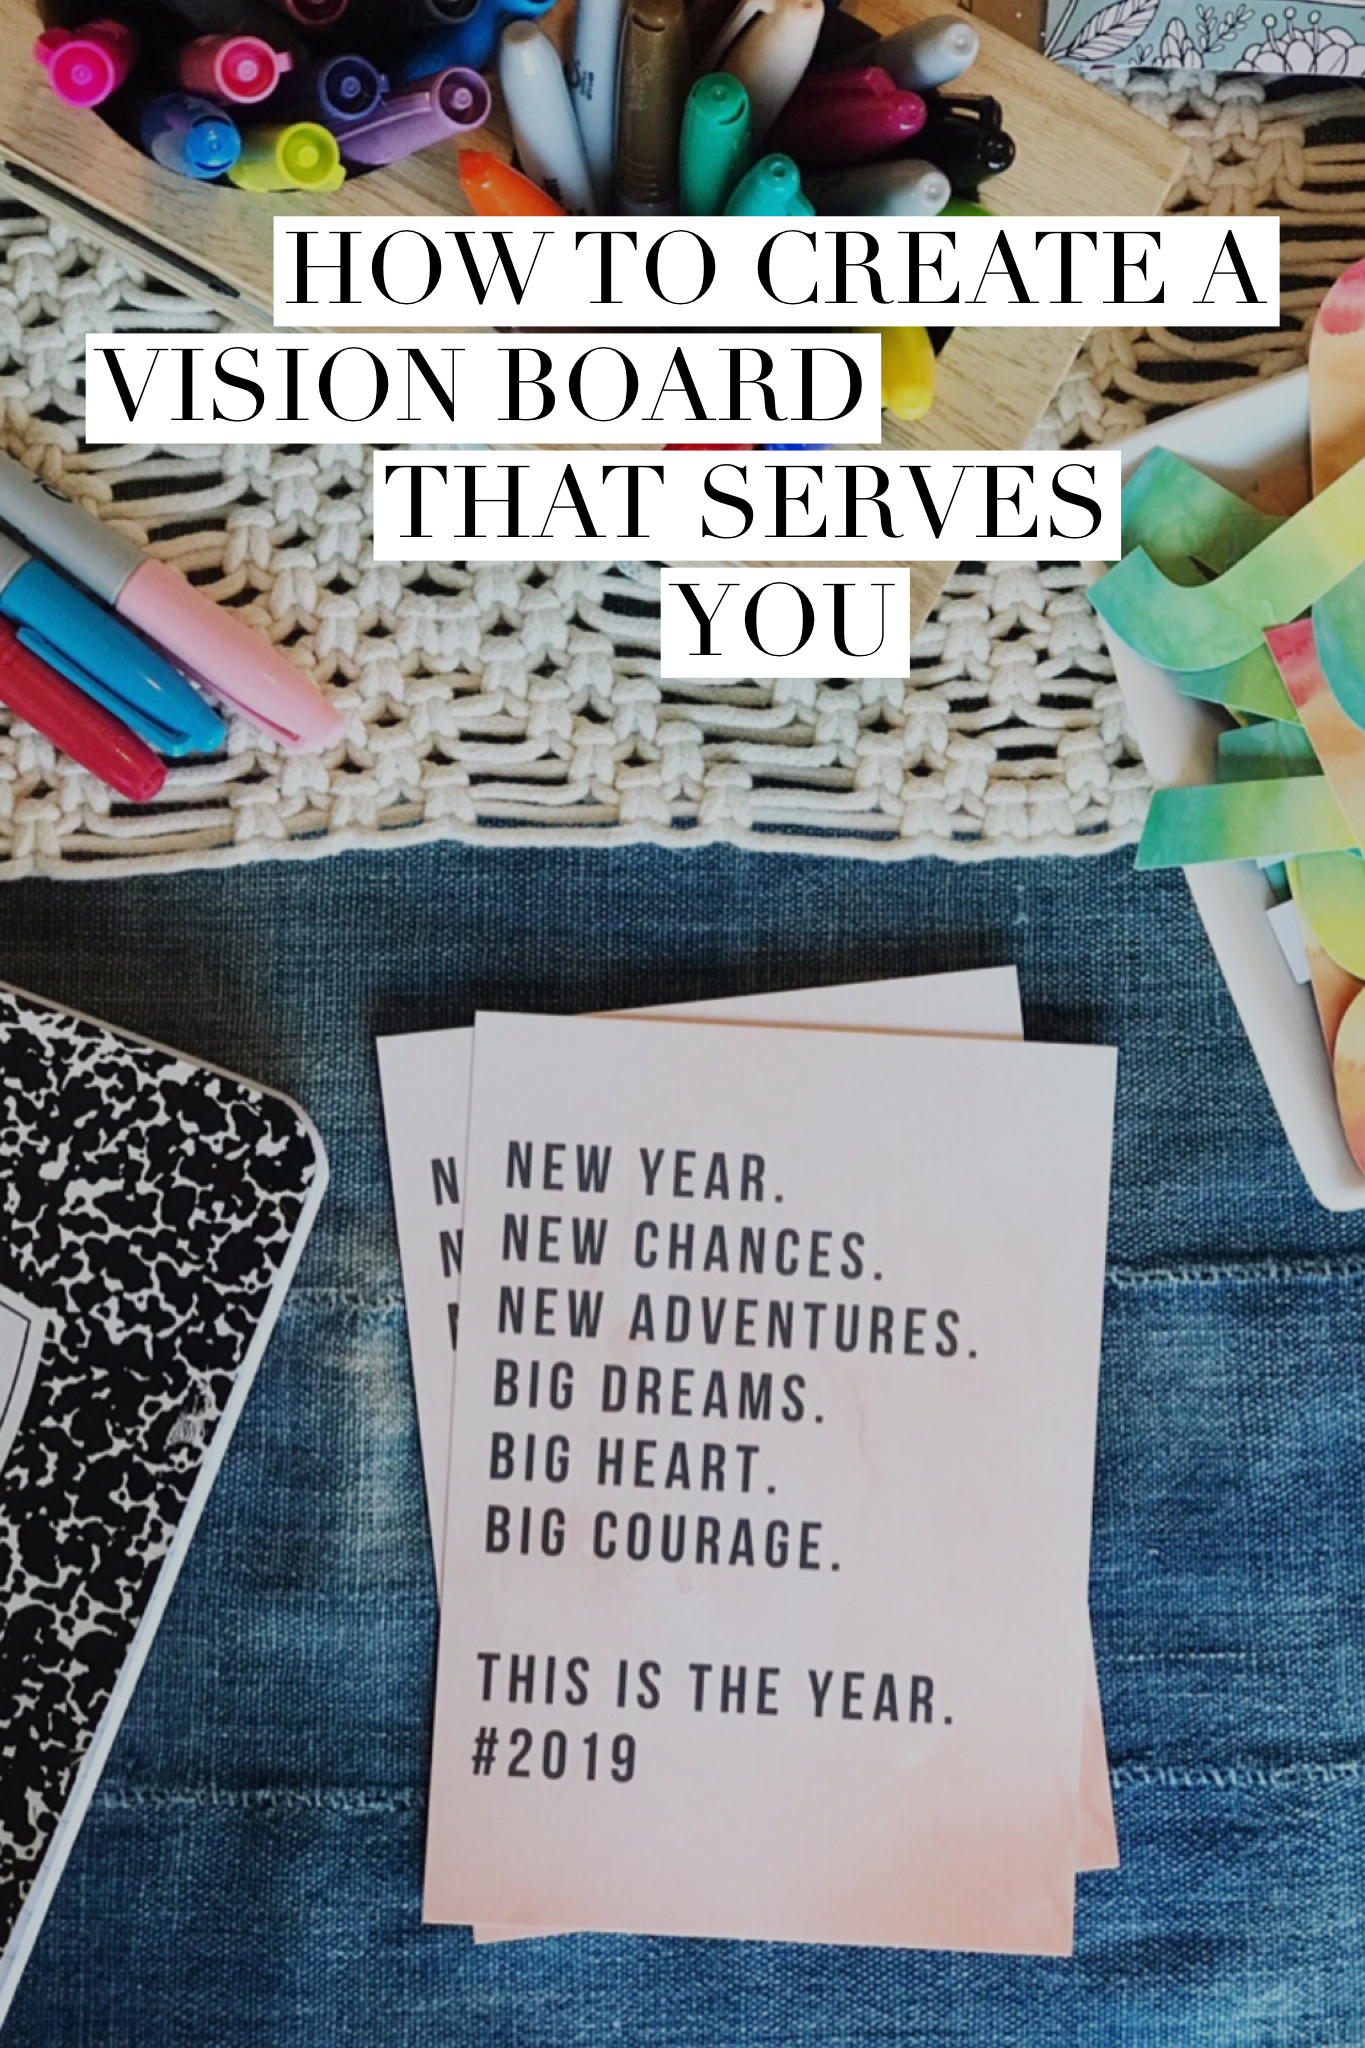 Vision Board How To Create One That Serves You In